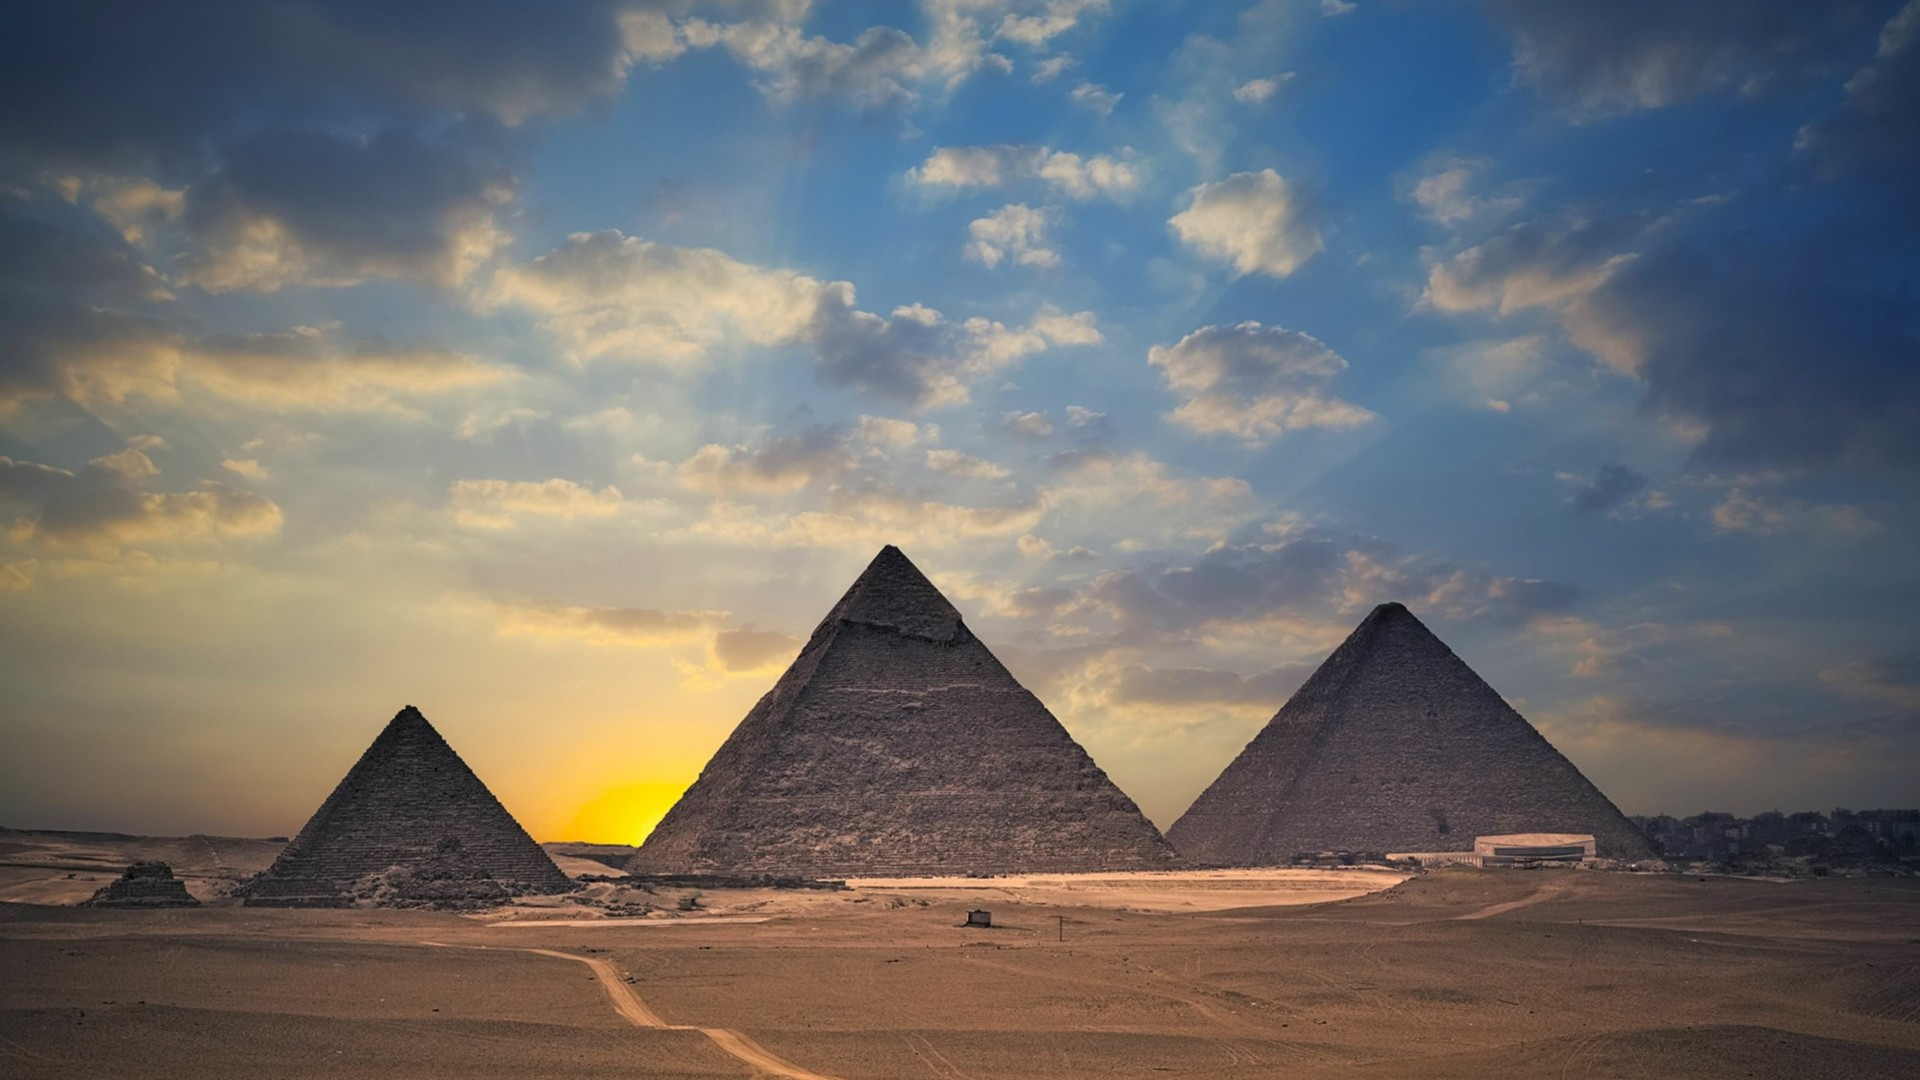 The Great Pyramids of Giza Wallpaper for Desktop 1920x1080